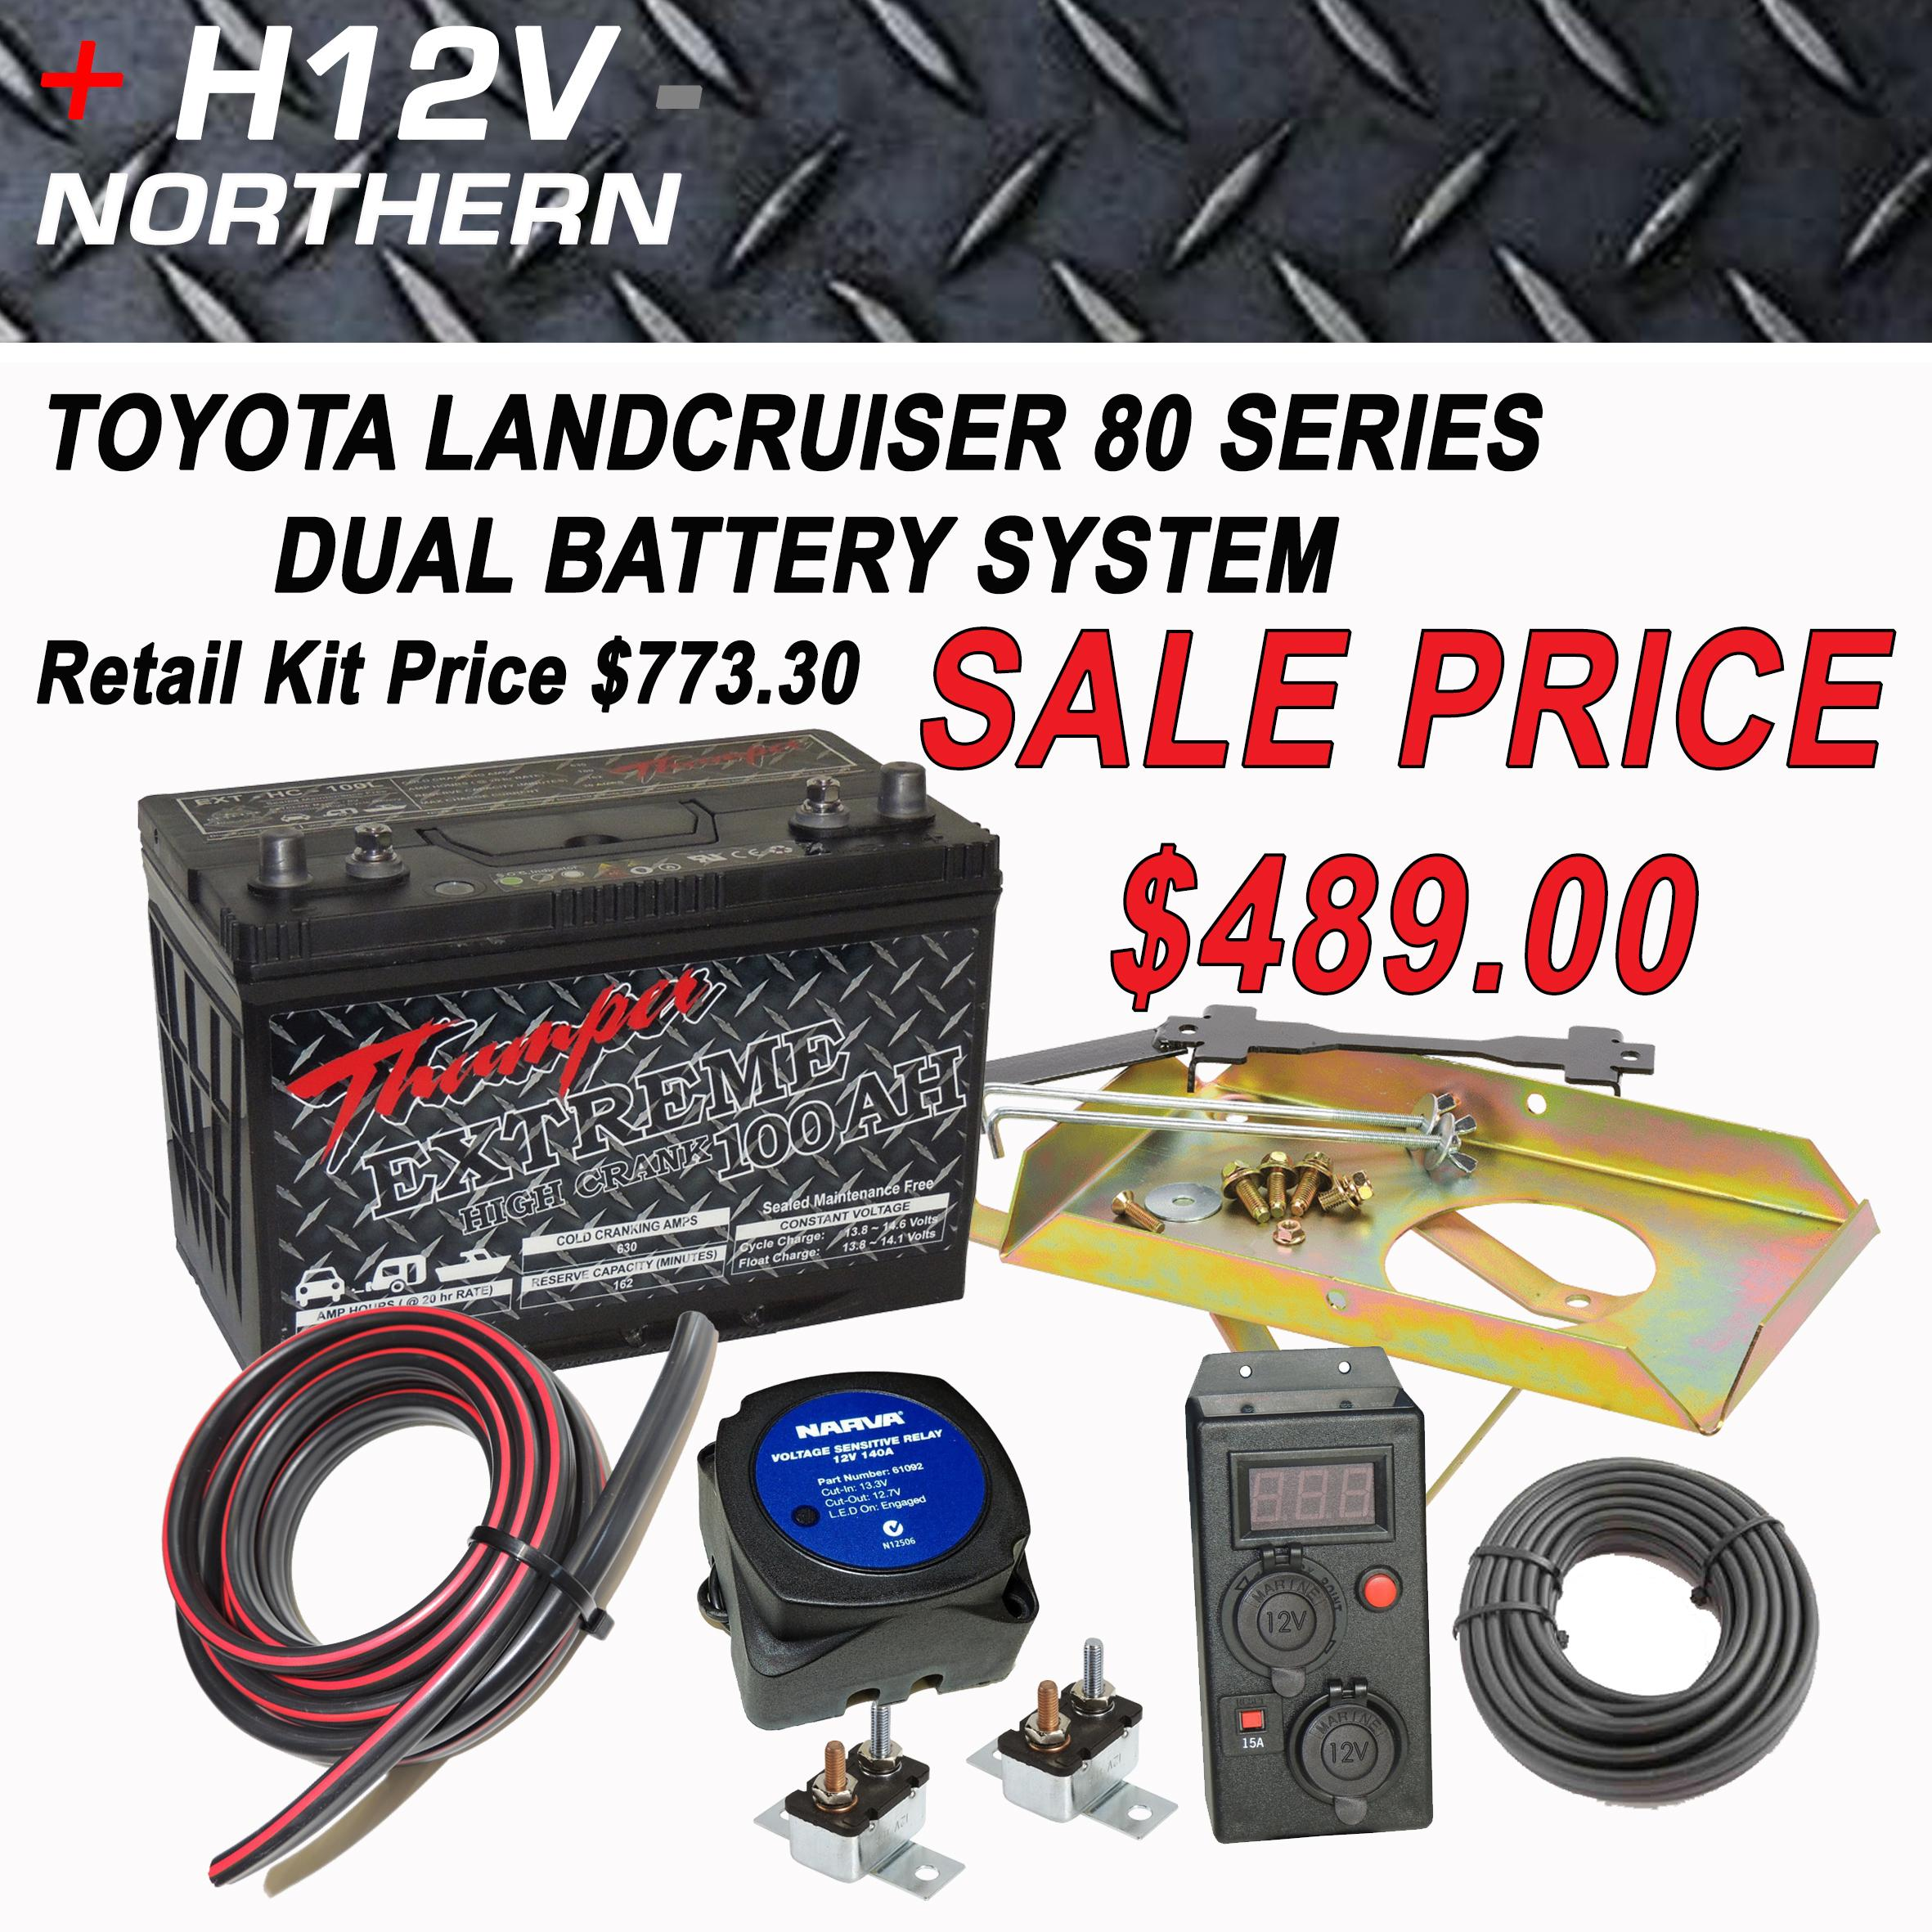 Toyota Landcruiser 80 Series Dual Battery System Home Of